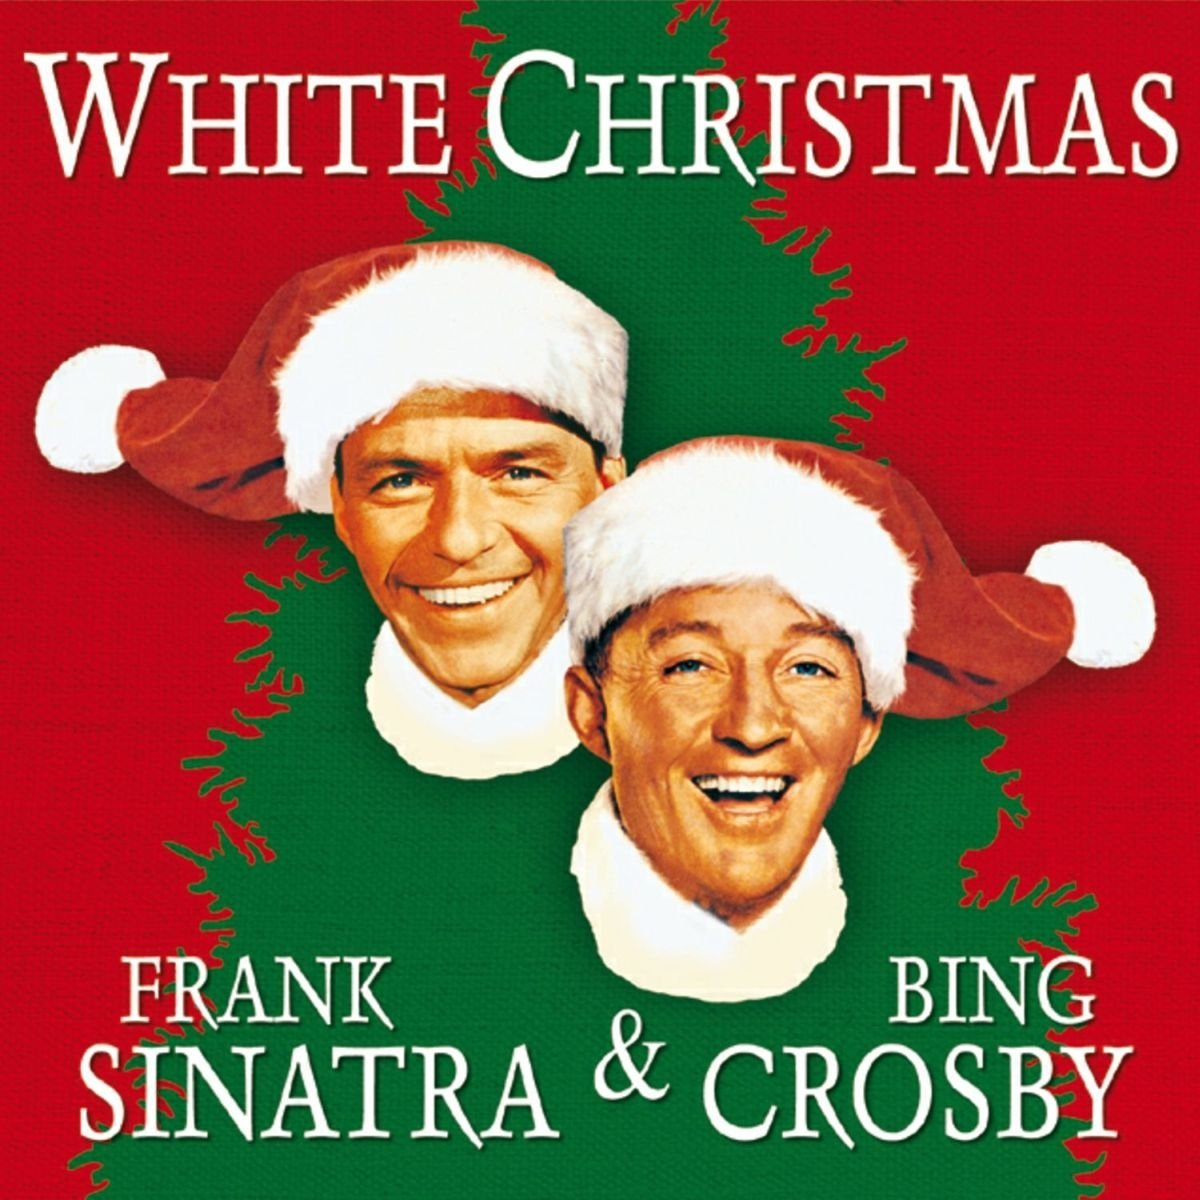 White Christmas - Frank Sinatra, Bing Crosby: Amazon.de: Musik